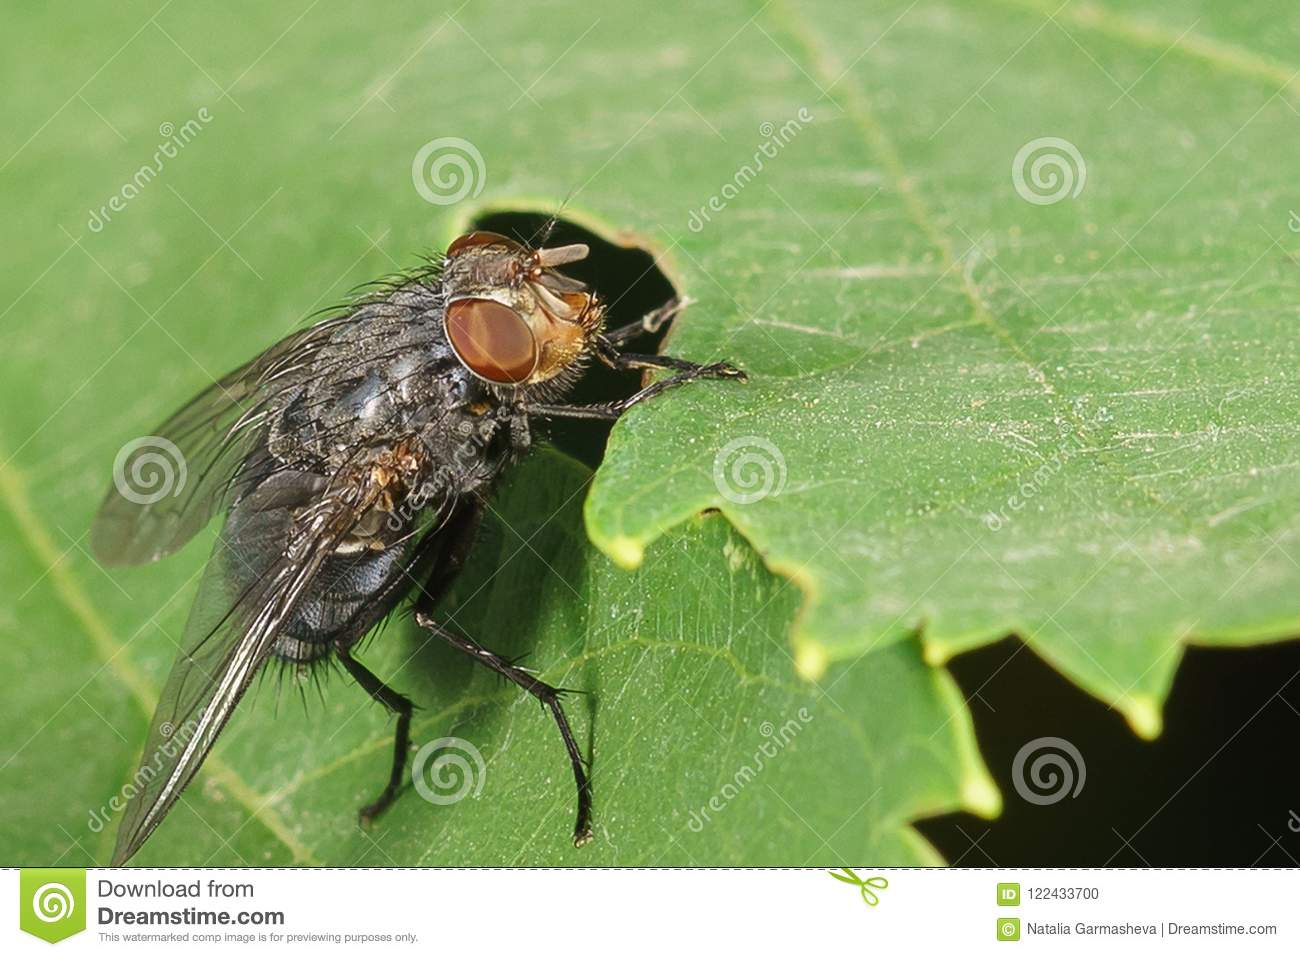 Home fly lat musca domestica family of true flies lat muscidae on a green leaf a common synanthropic organism